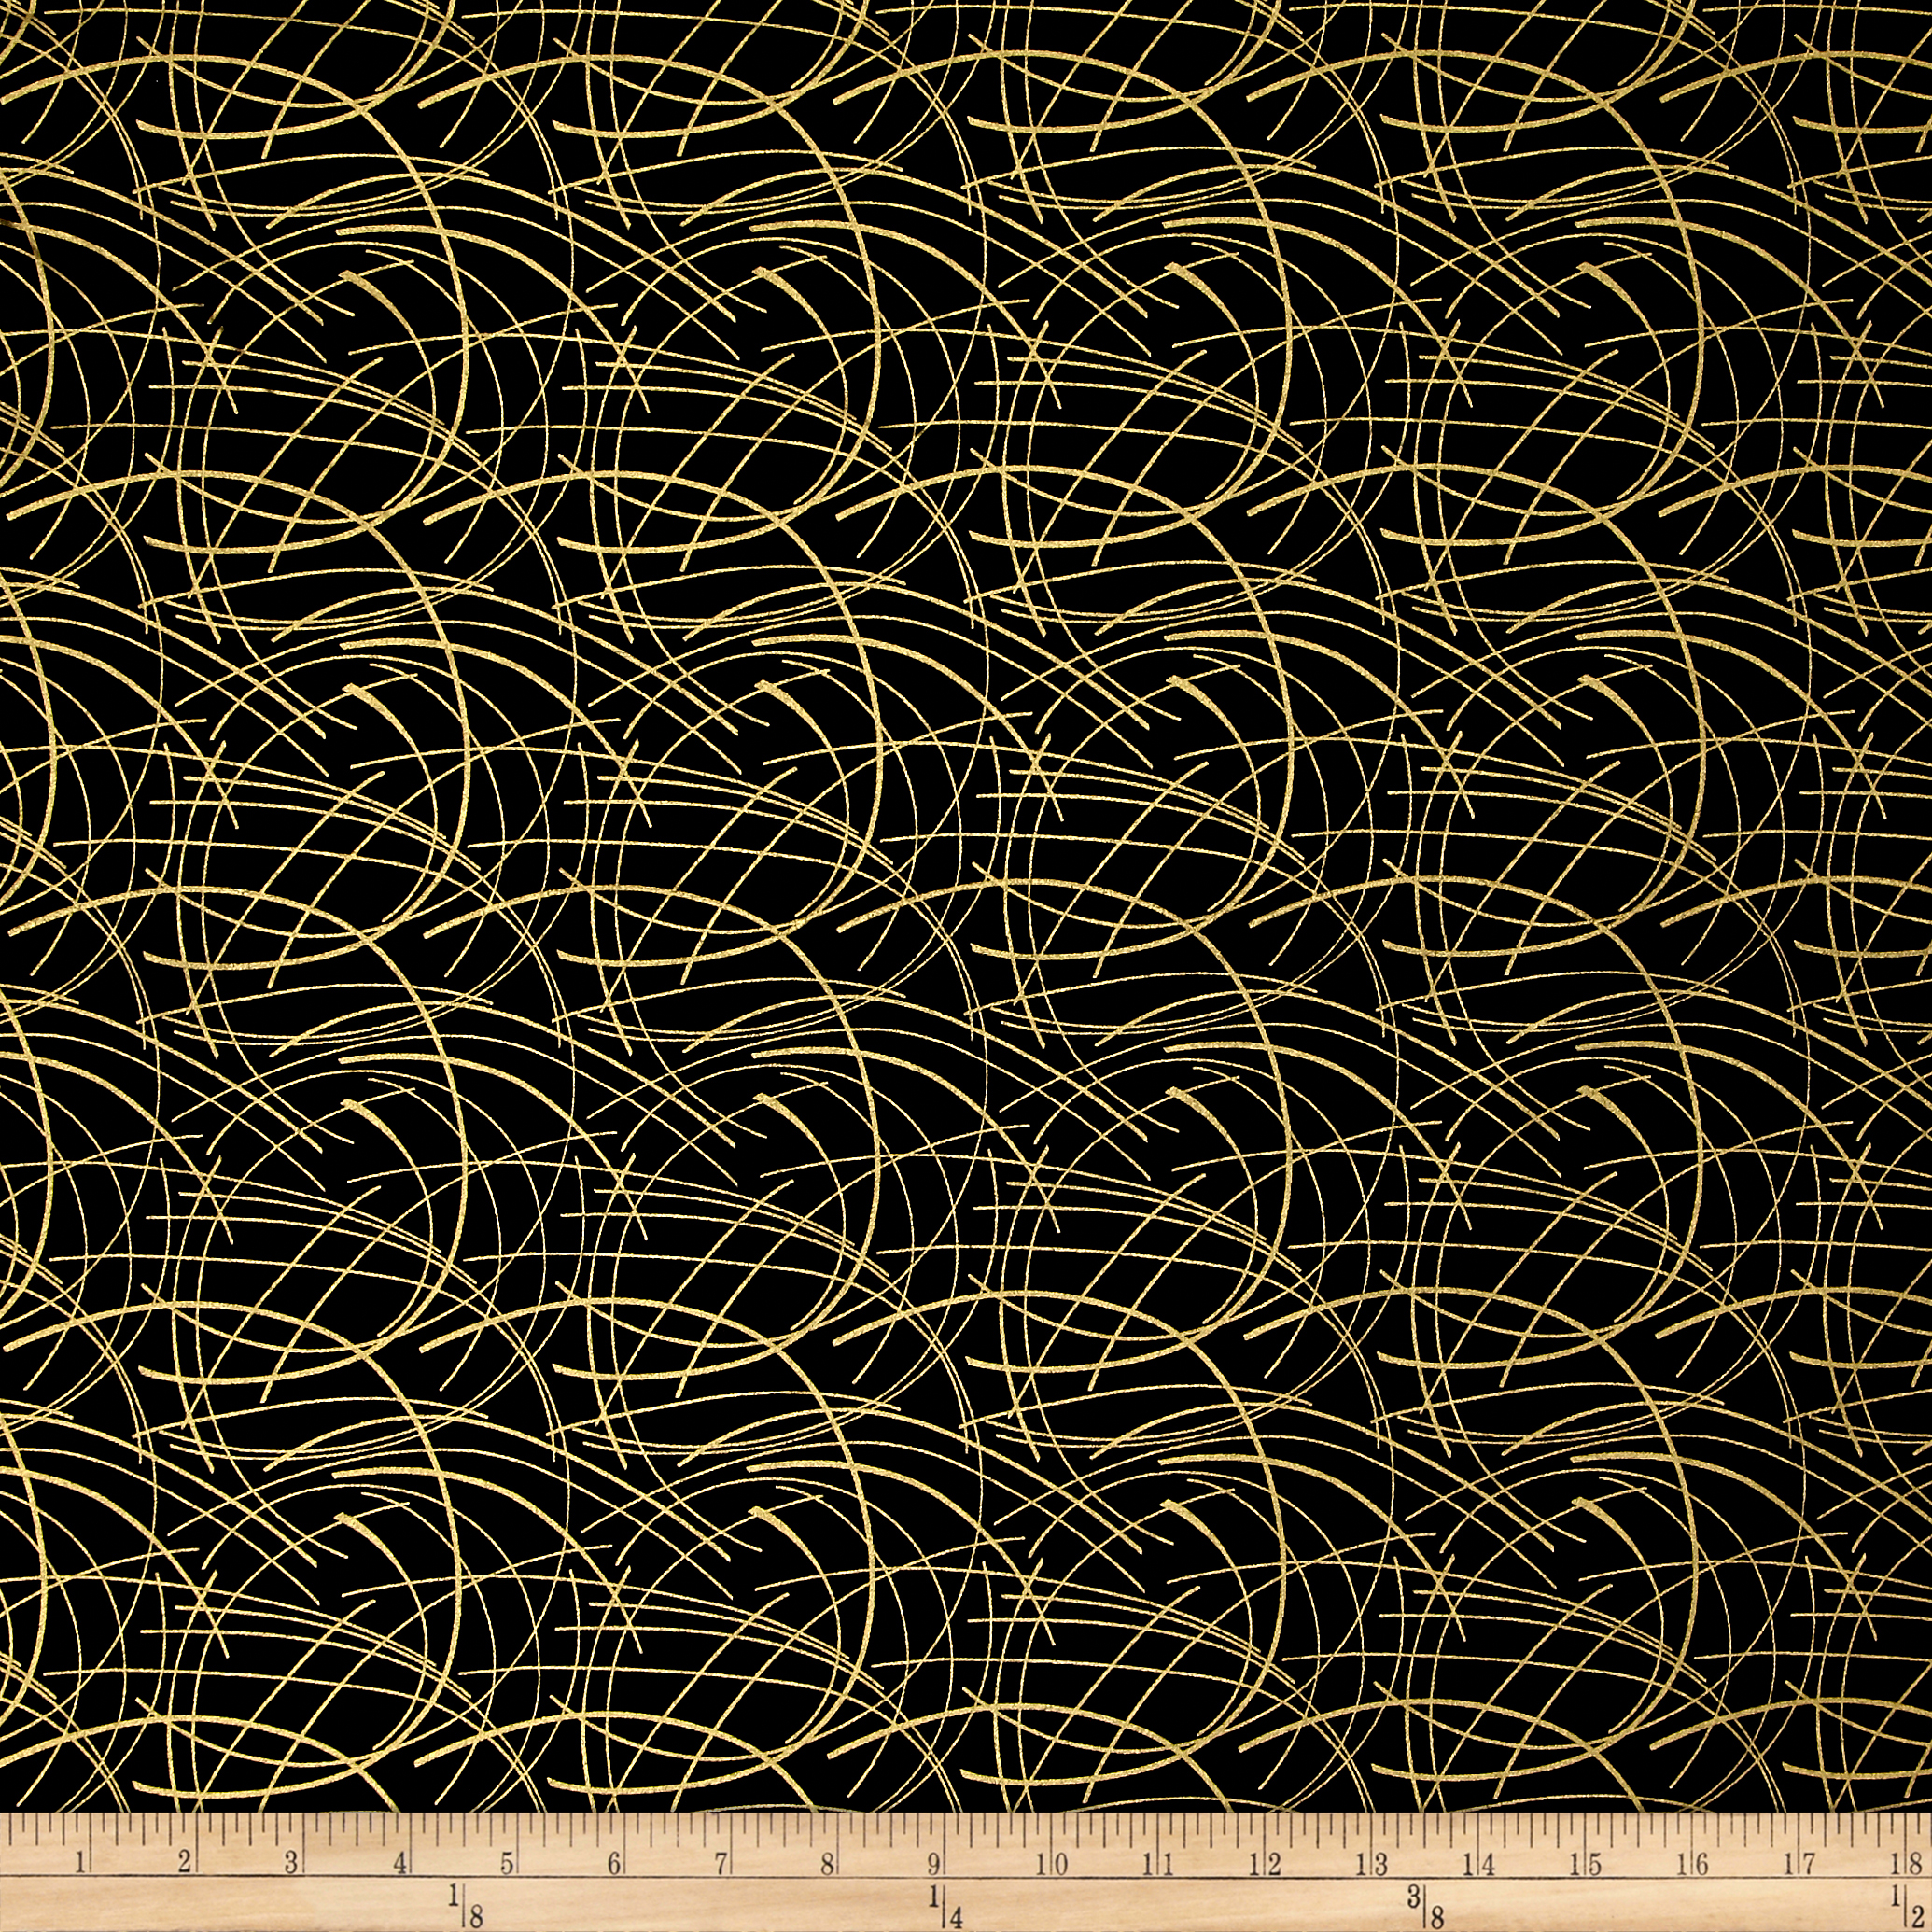 Butterfly Fandango Metallic Golden Spray Gold Arc Black Fabric